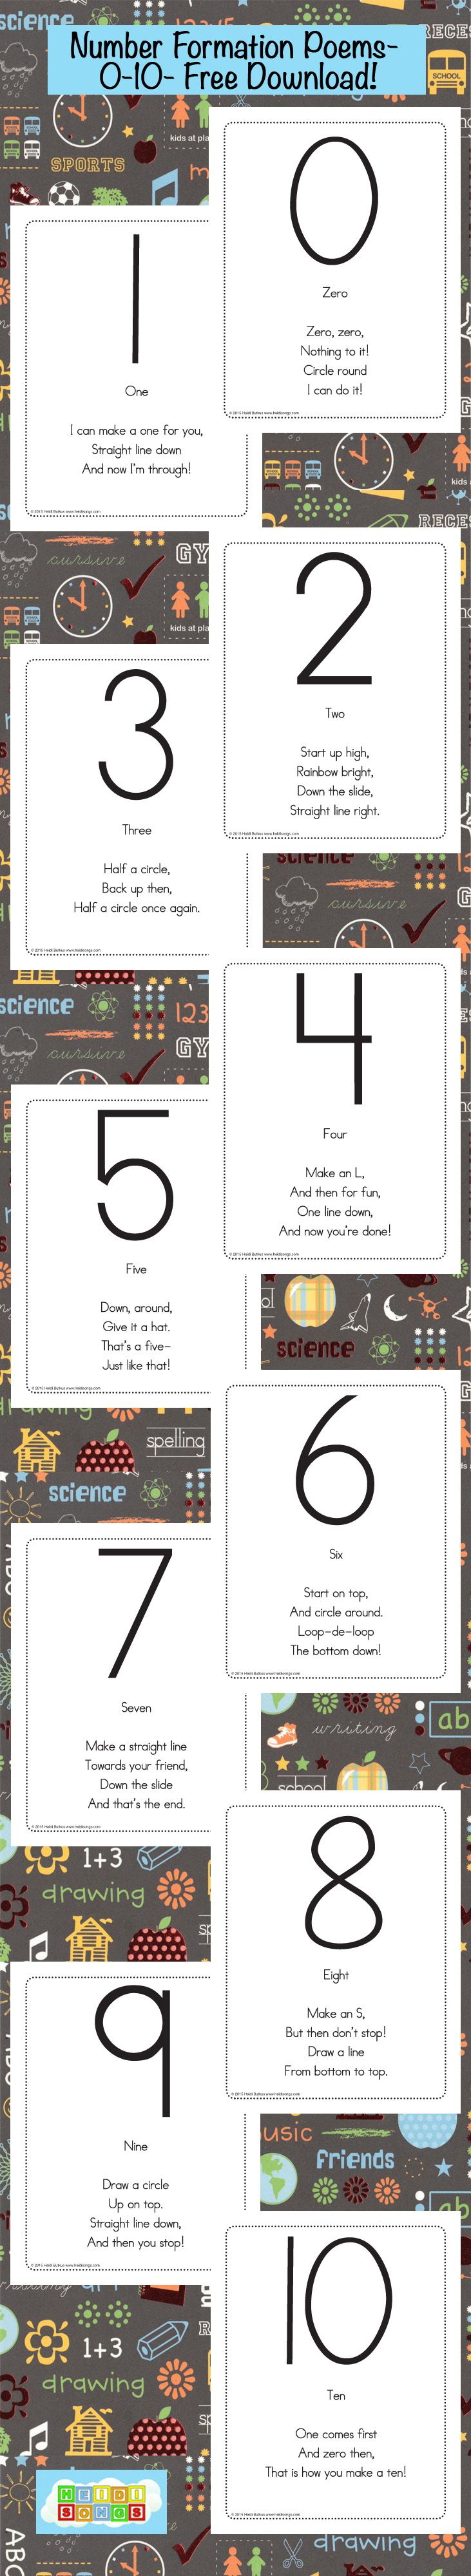 Number Writing Poems Freebie from HeidiSongs-(for teaching children number formation) #kindergarten